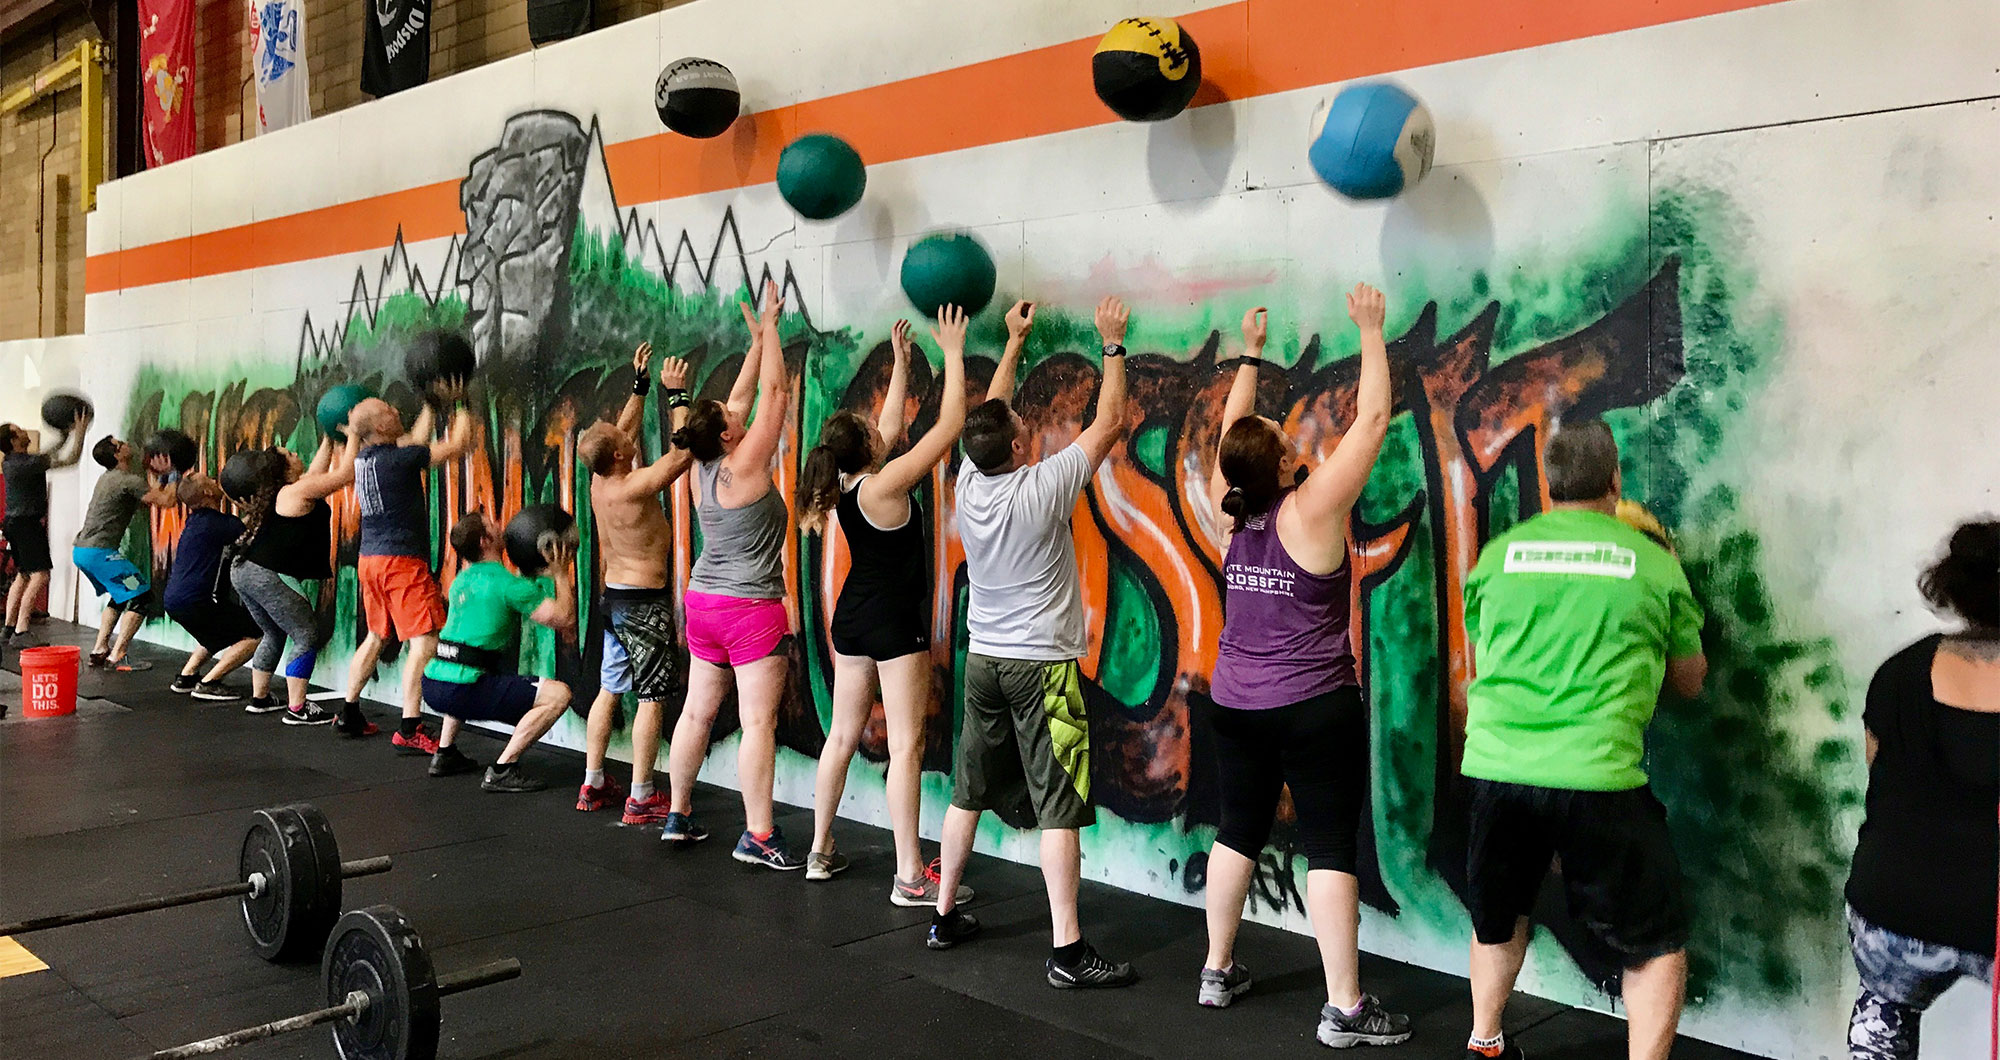 Schedules at <br>White Mountain Crossfit